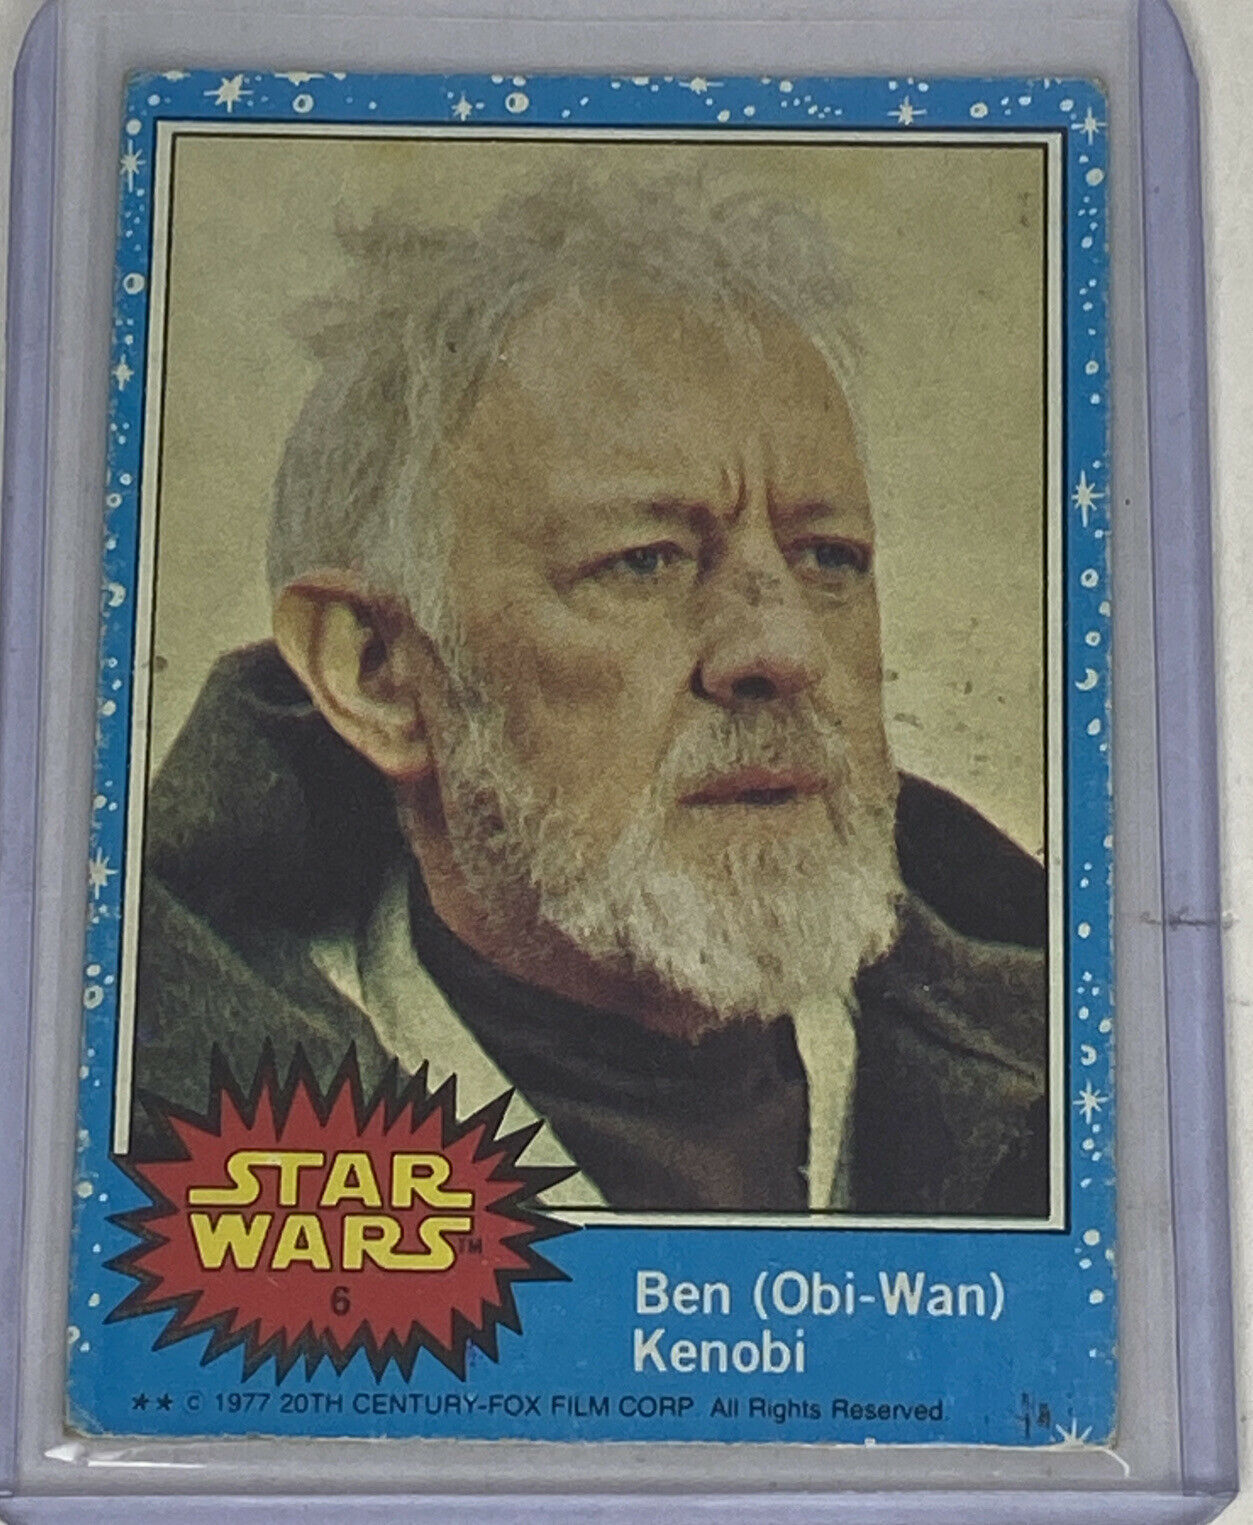 1977 Star Wars #6 Ben (Obi-Wan) Kenobi Topps Trading Card Original Blue Series 1 - $59.39